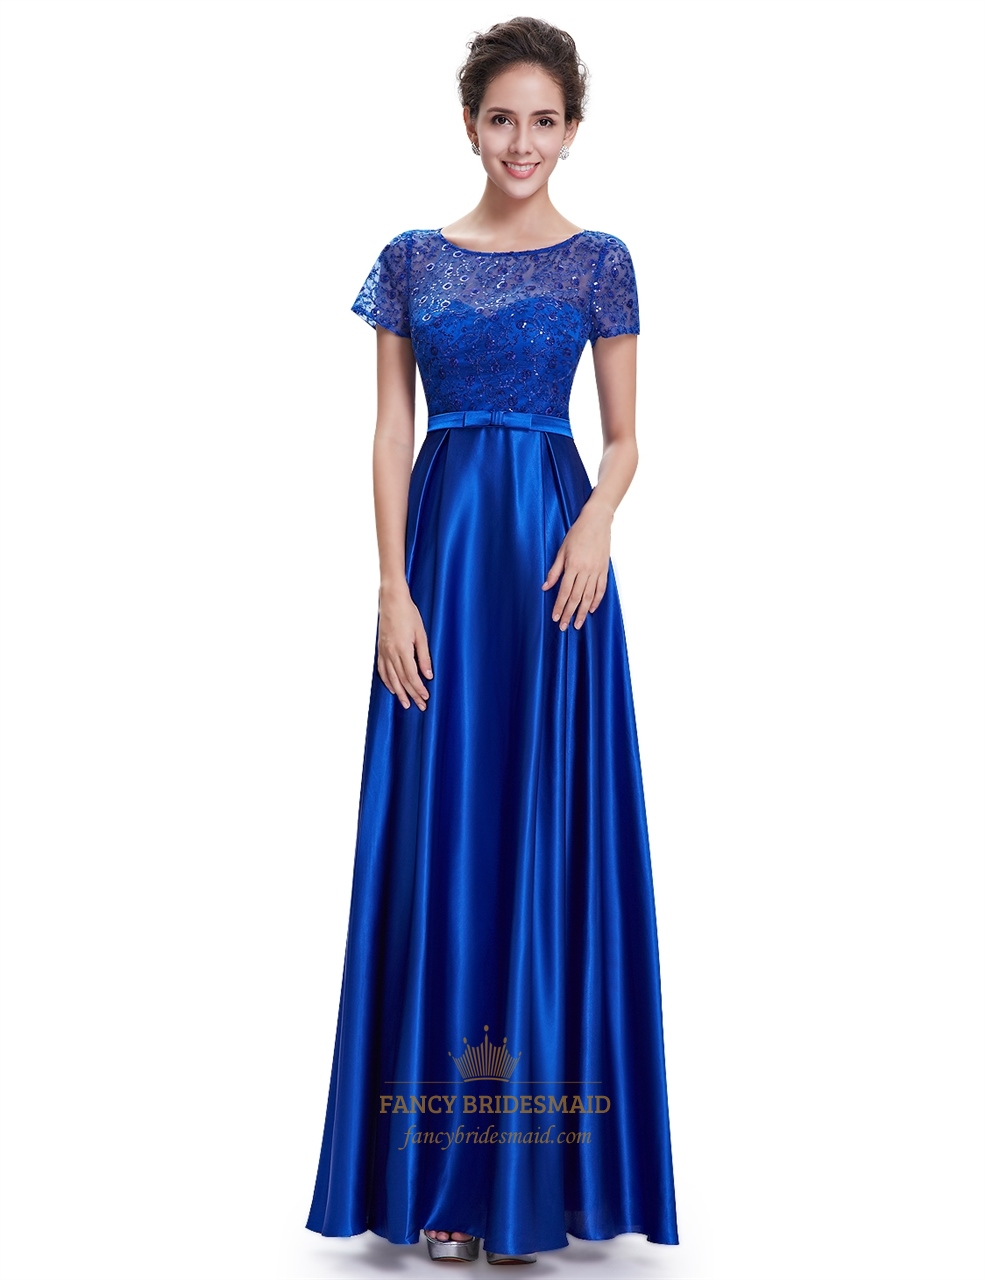 Bridesmaid dresses royal blue long high cut wedding dresses for Blue long dress wedding